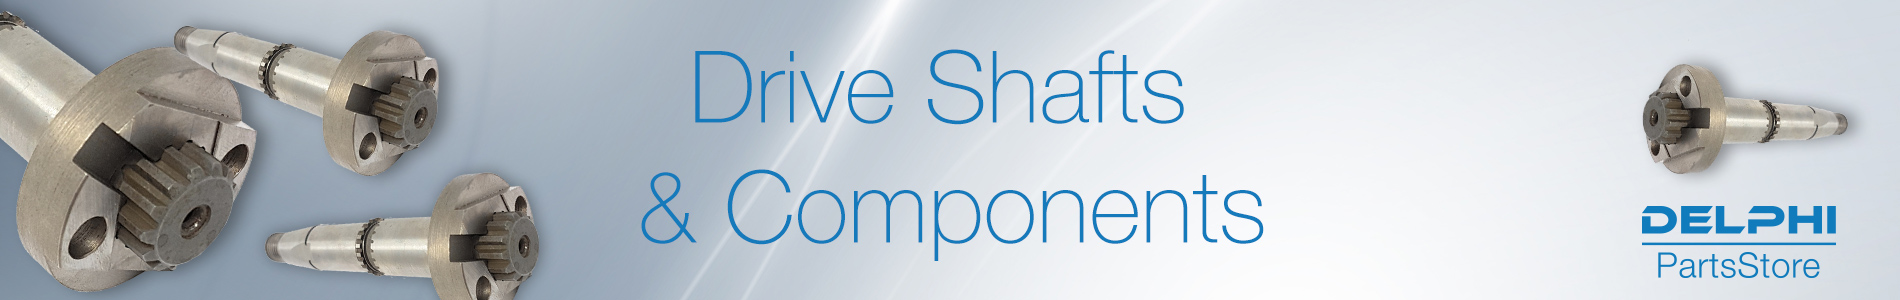 Drive Shafts & Components